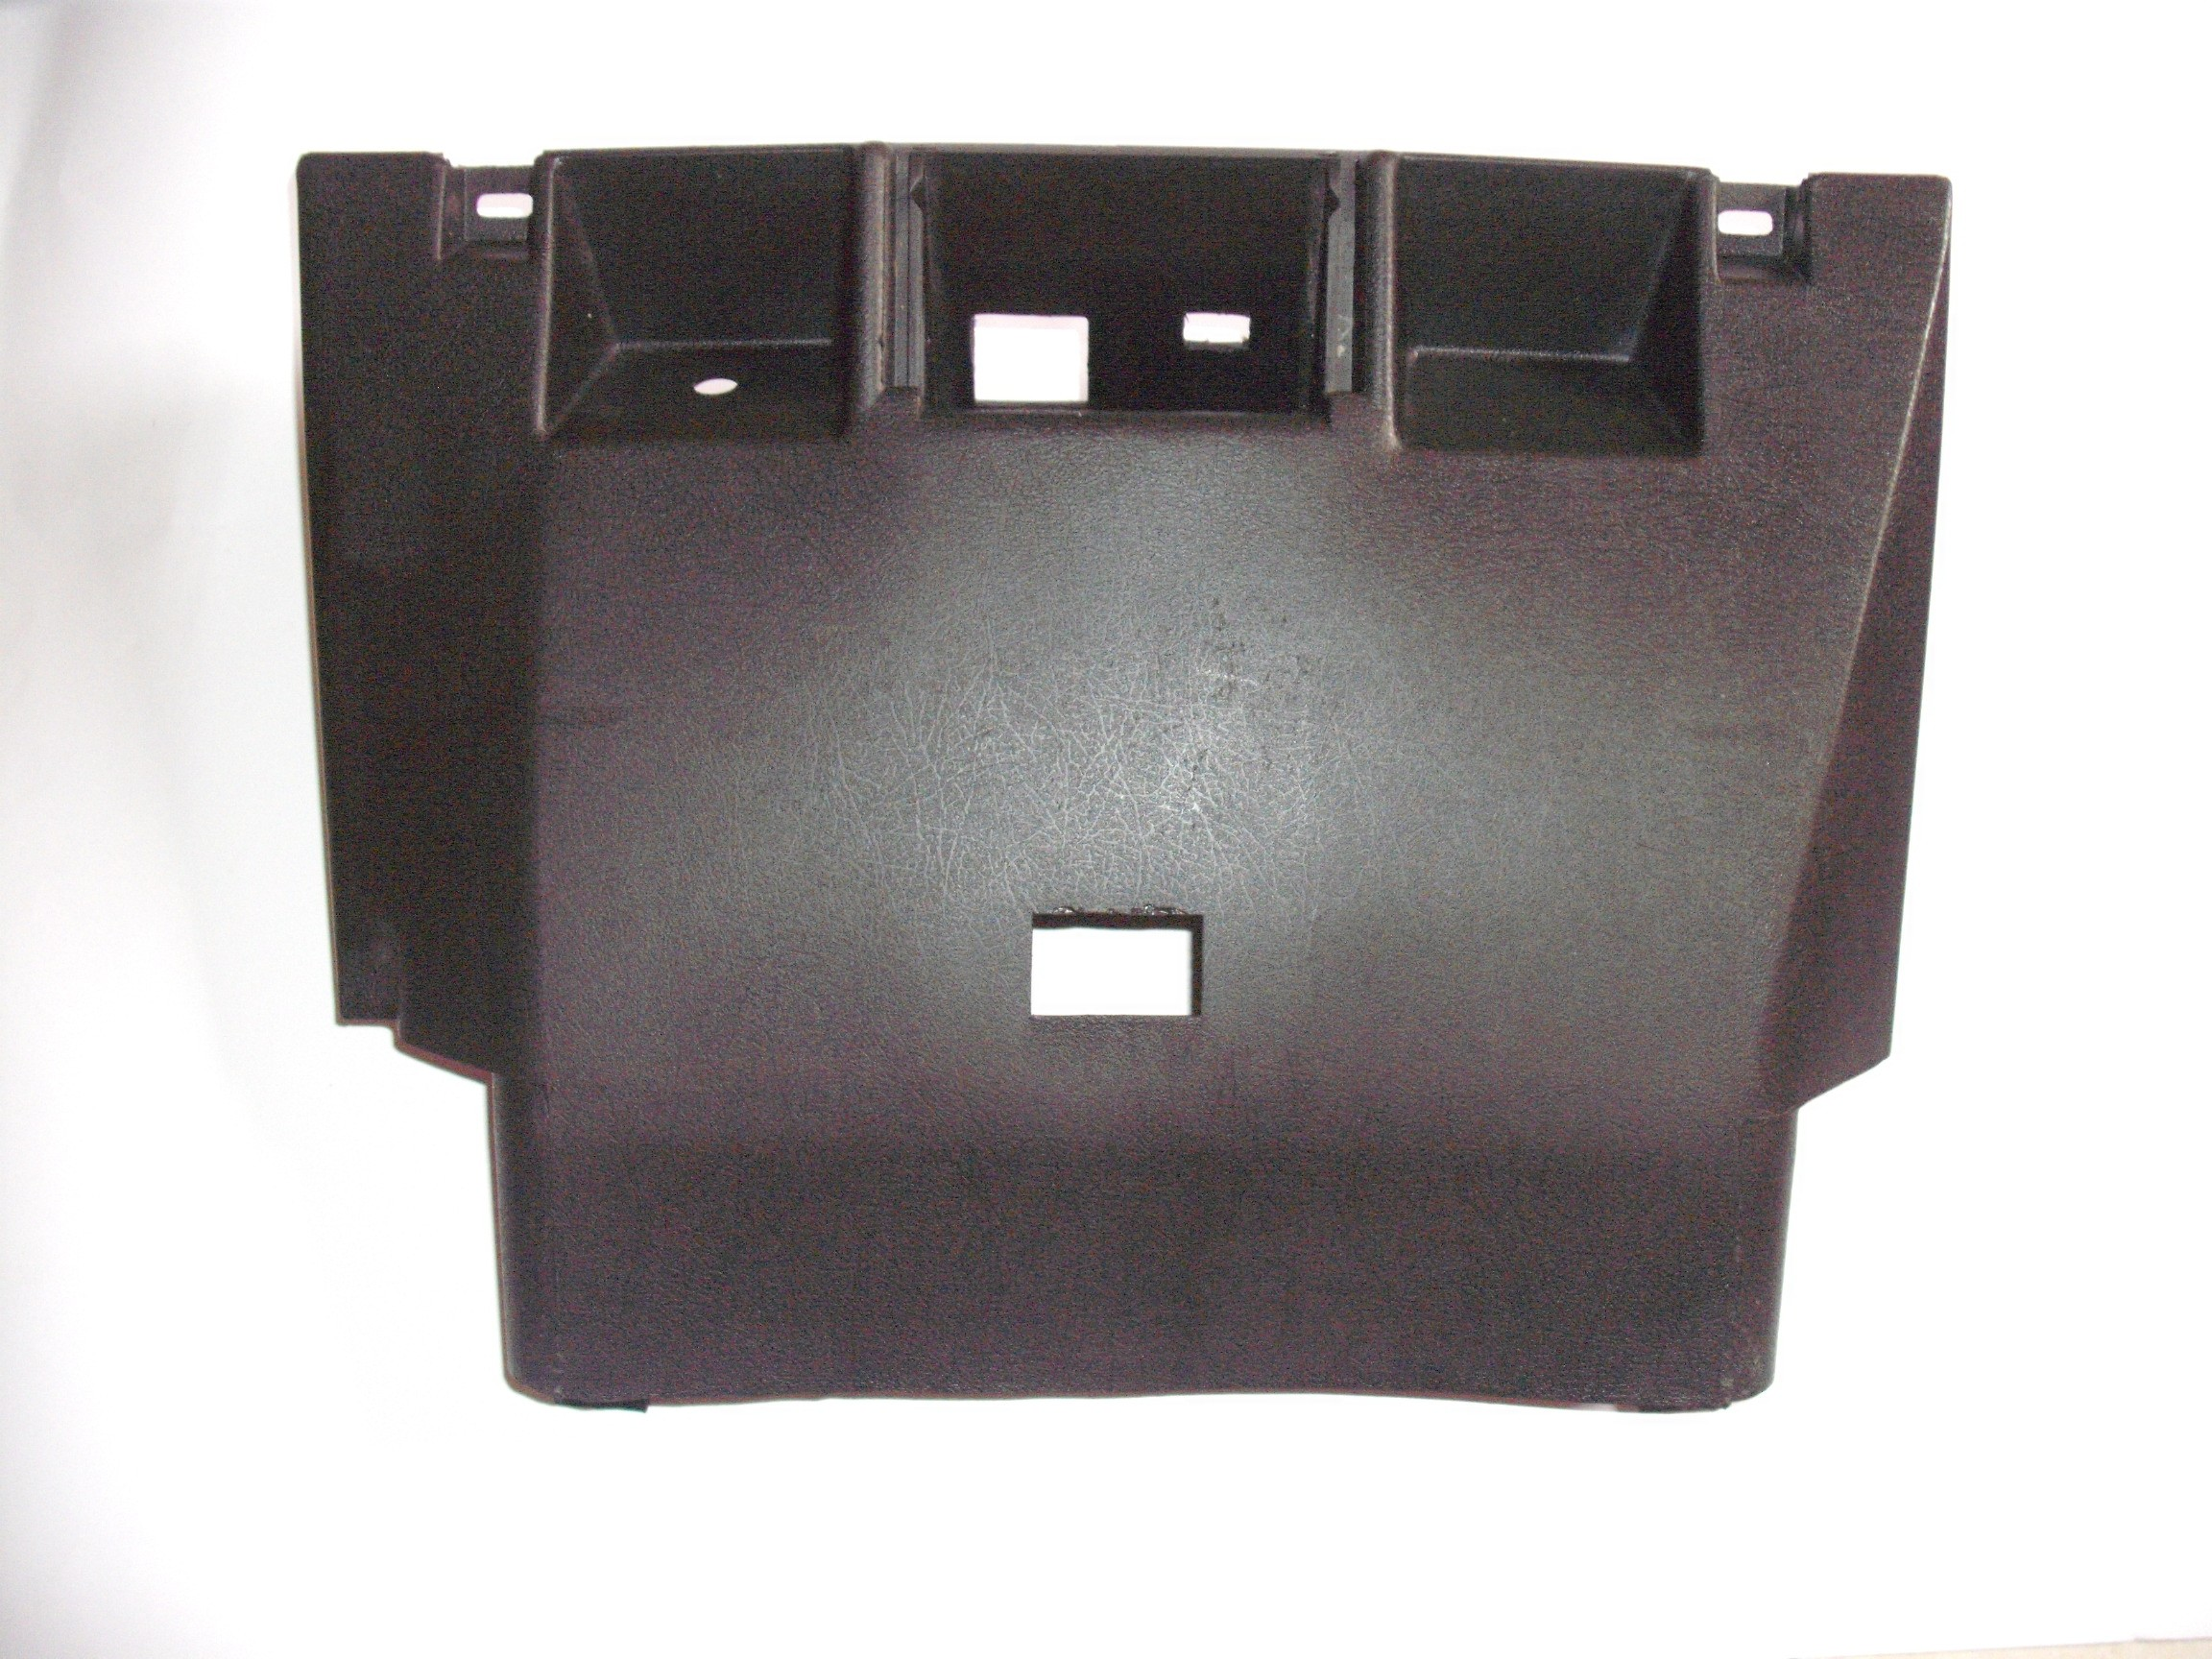 Capa Inferior Central Painel VW Passat - 74 a 88 - Novo Original